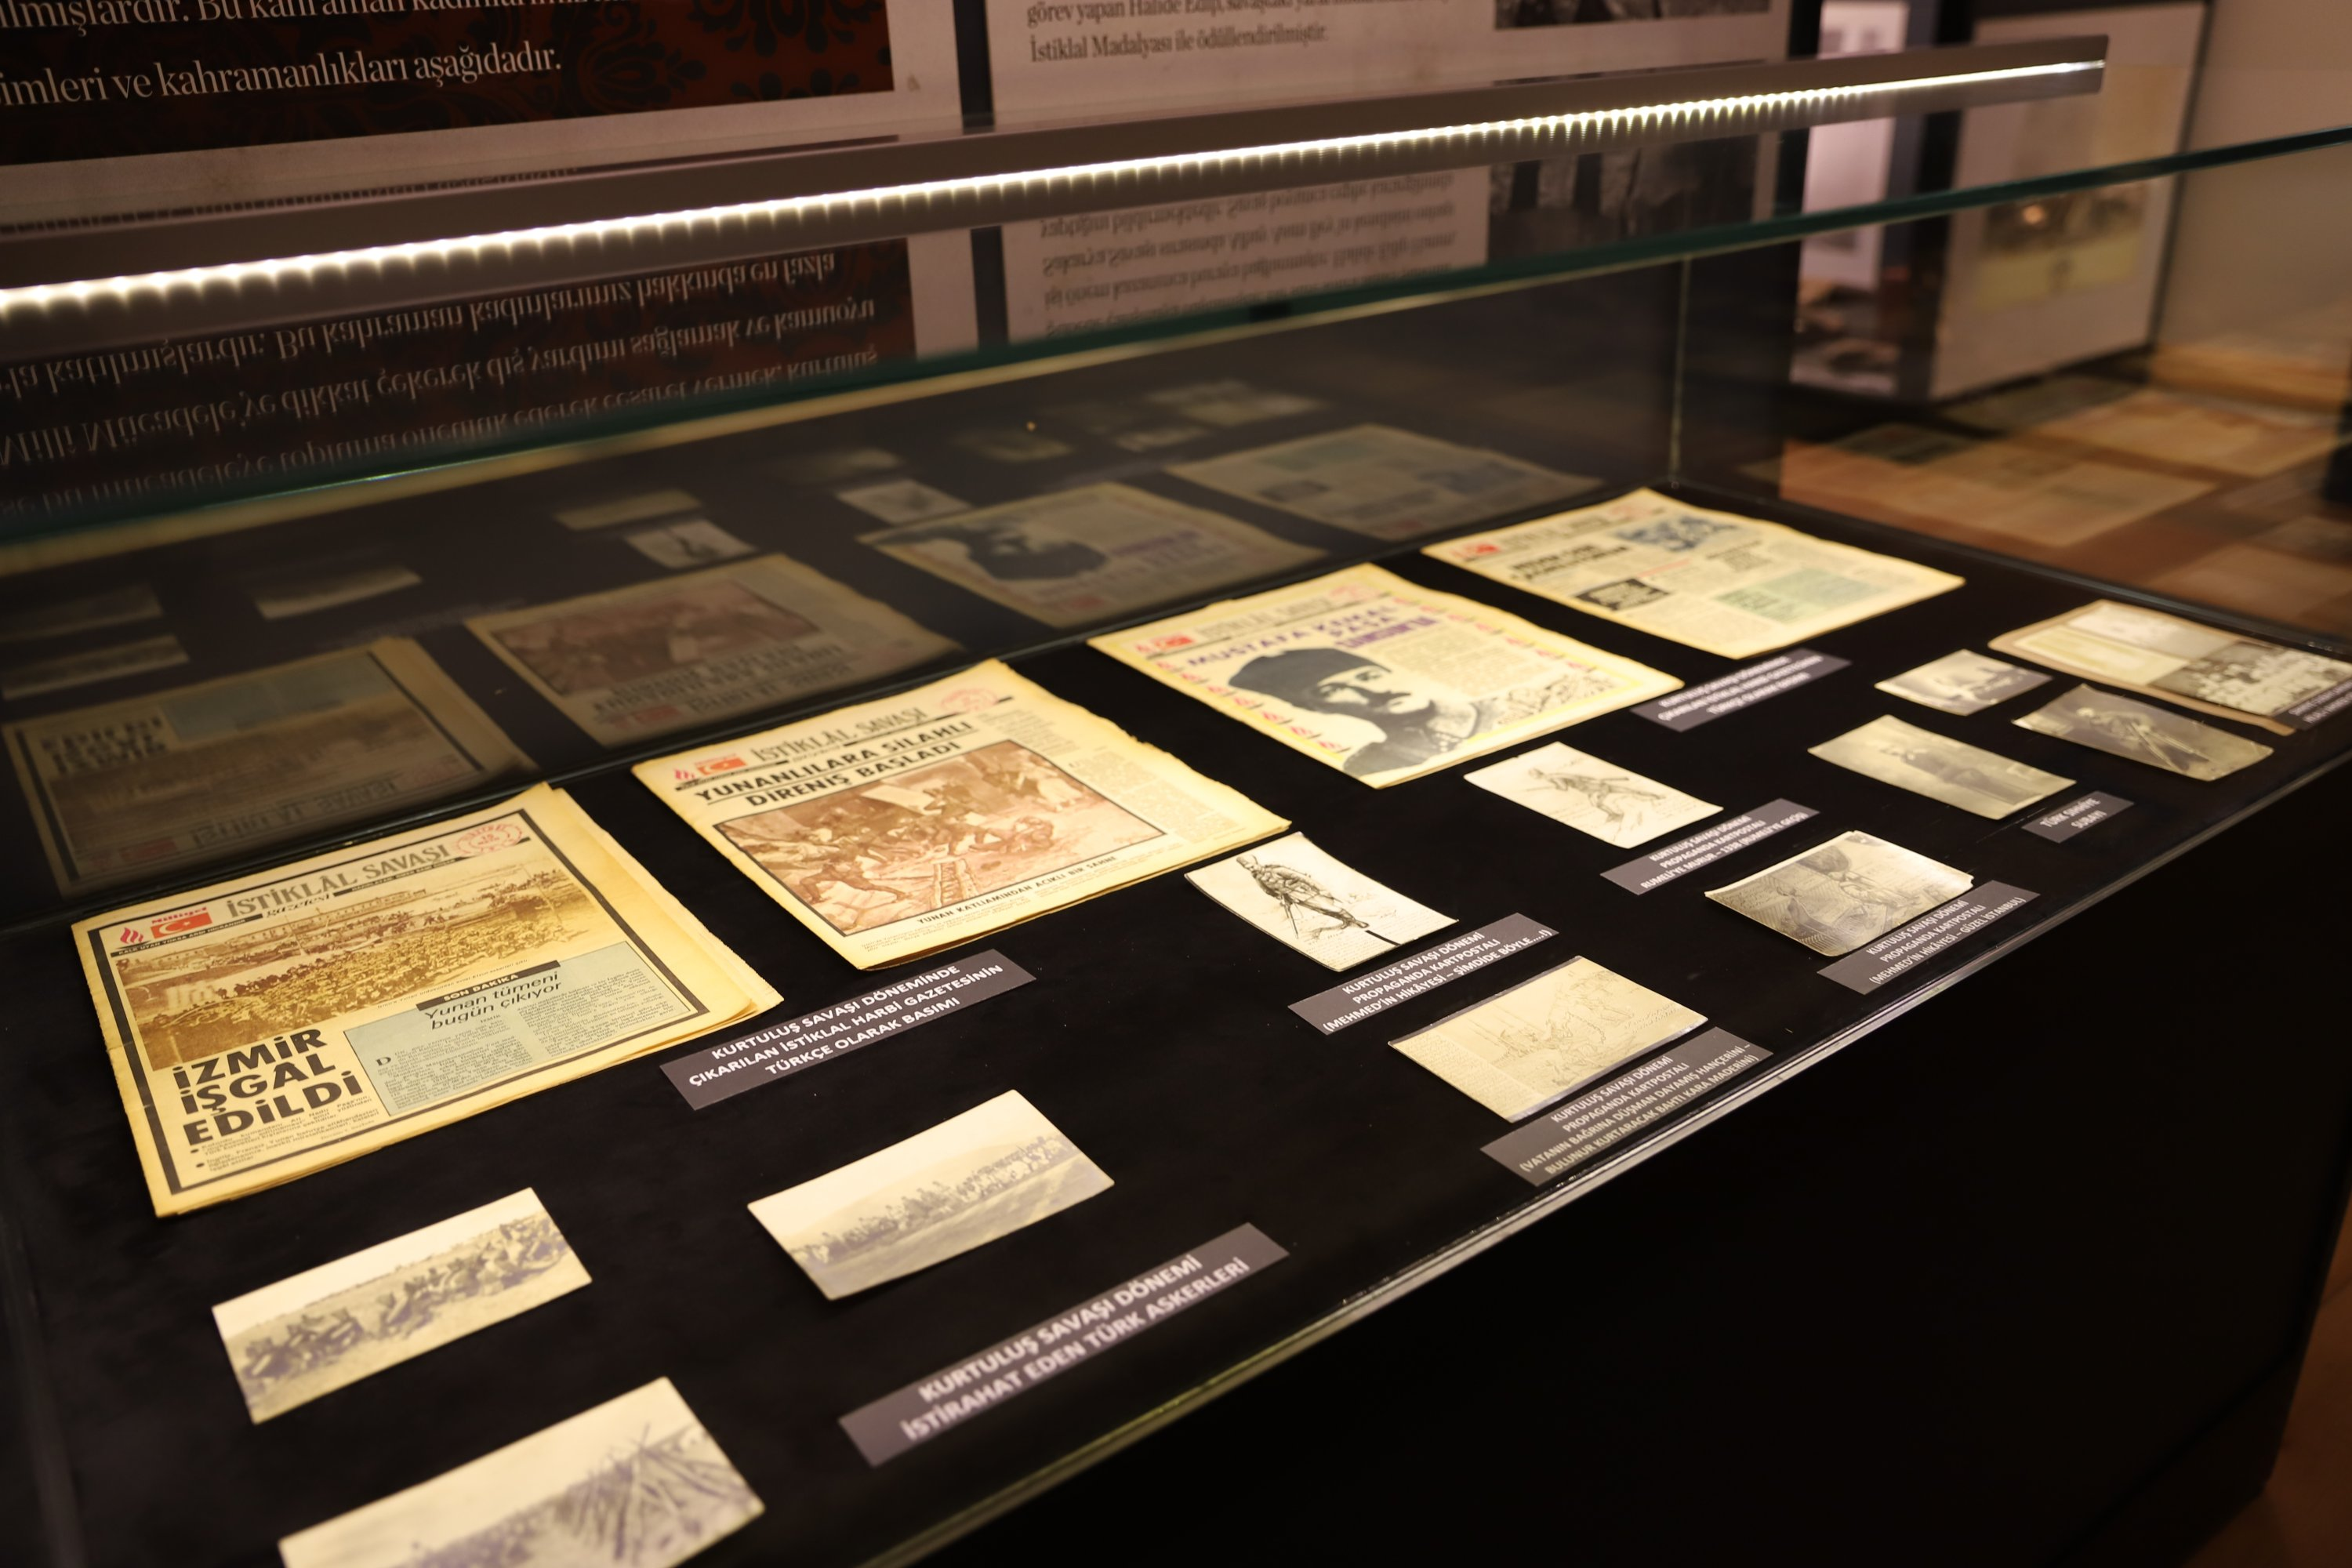 Some newspapers and photos on display at the exhibition in the Istanbul Cinema Museum. (Photo by Meltem Sarsılmaz)